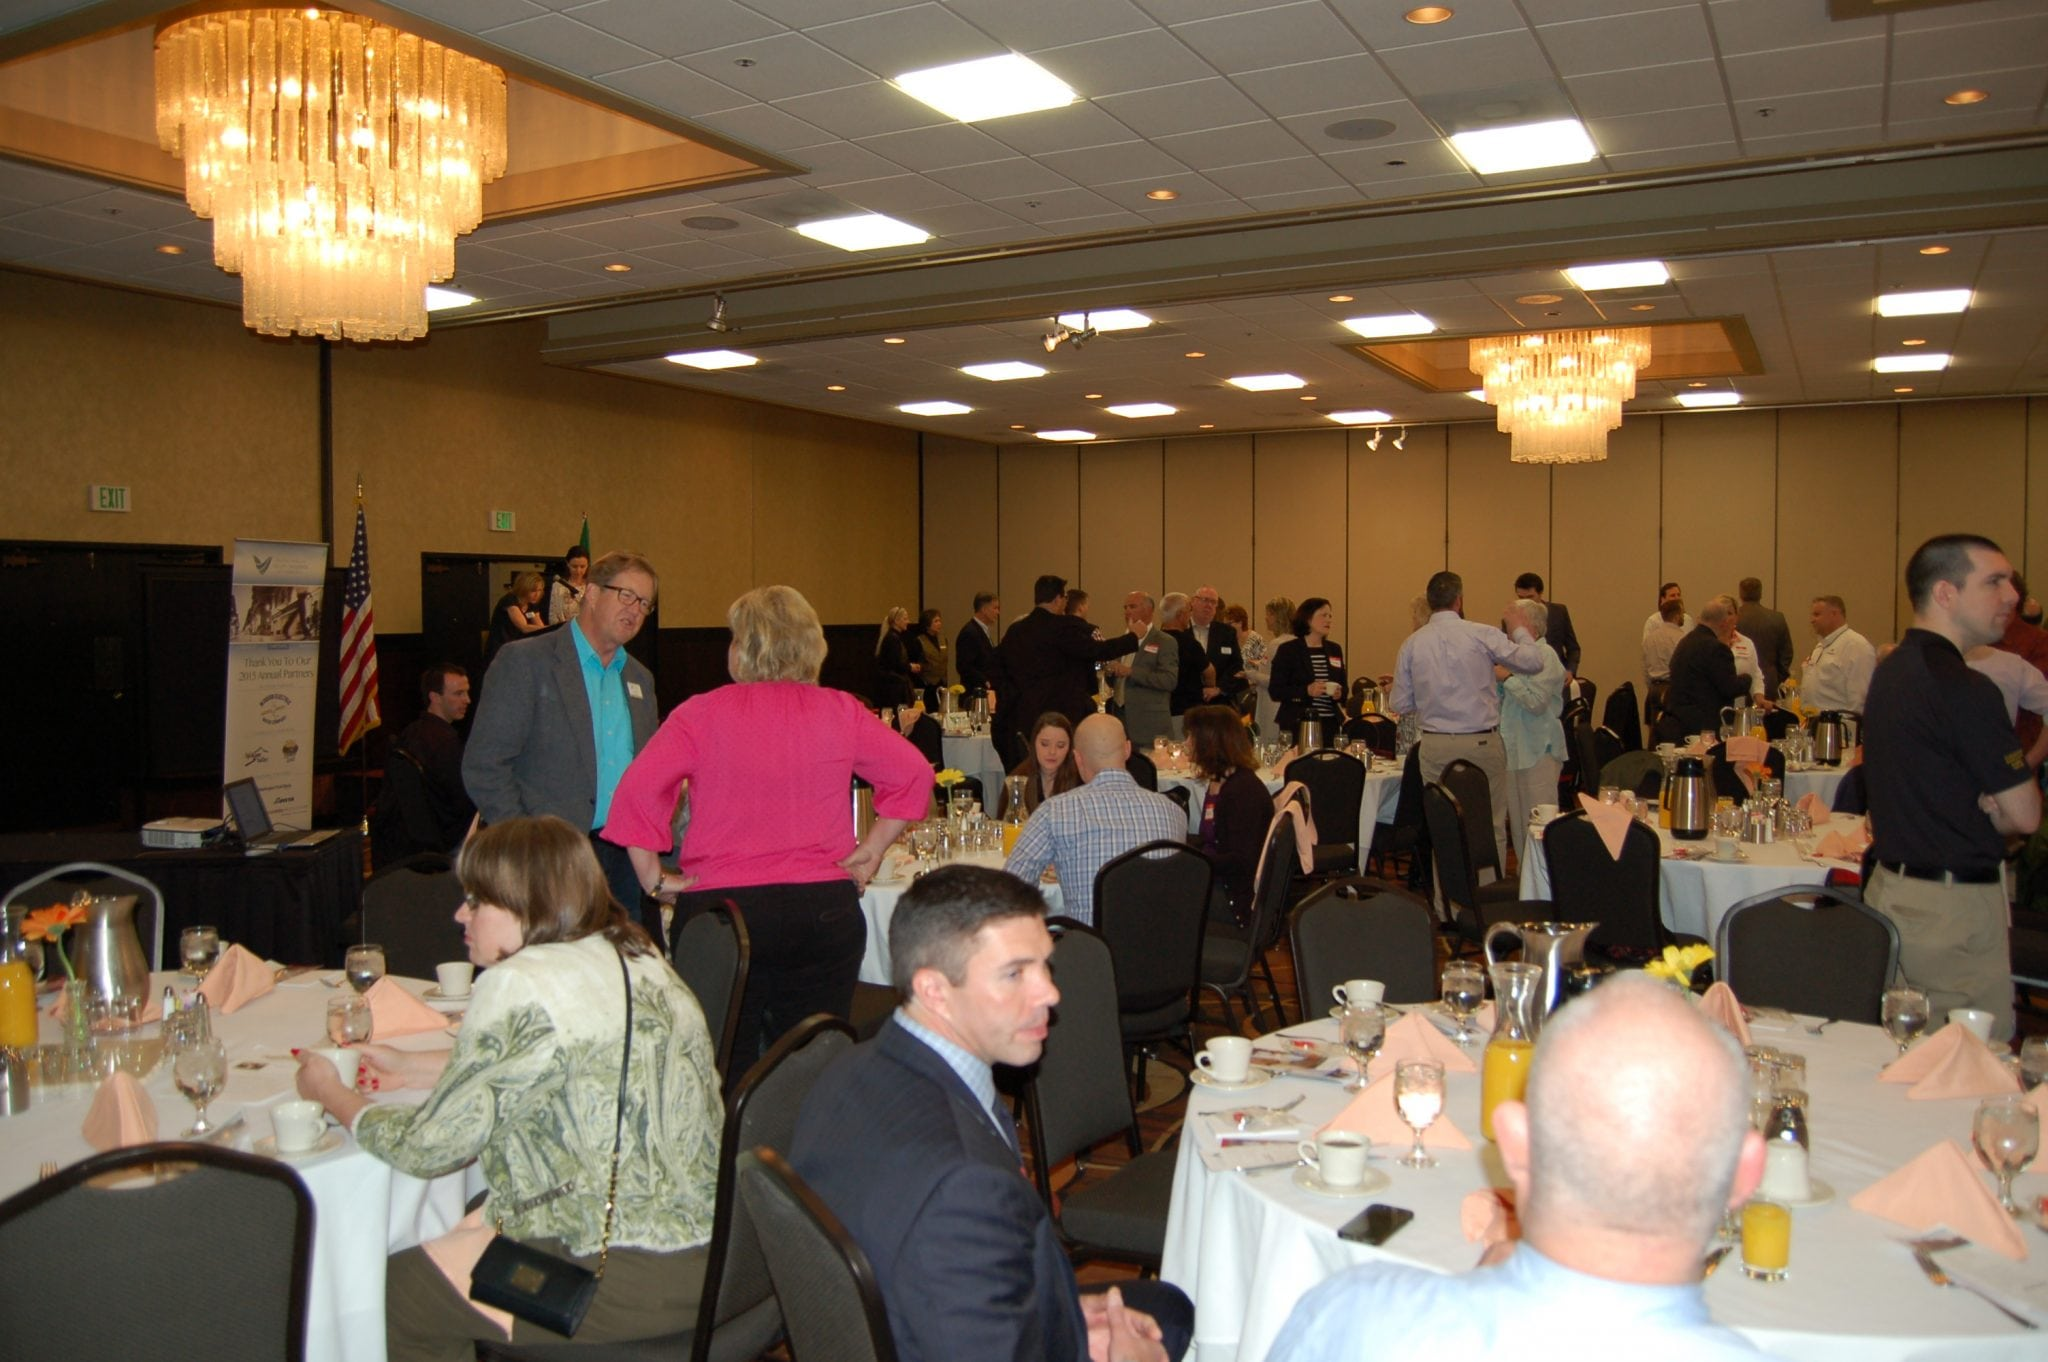 Networking is a great reason to attend the Business Connections events.